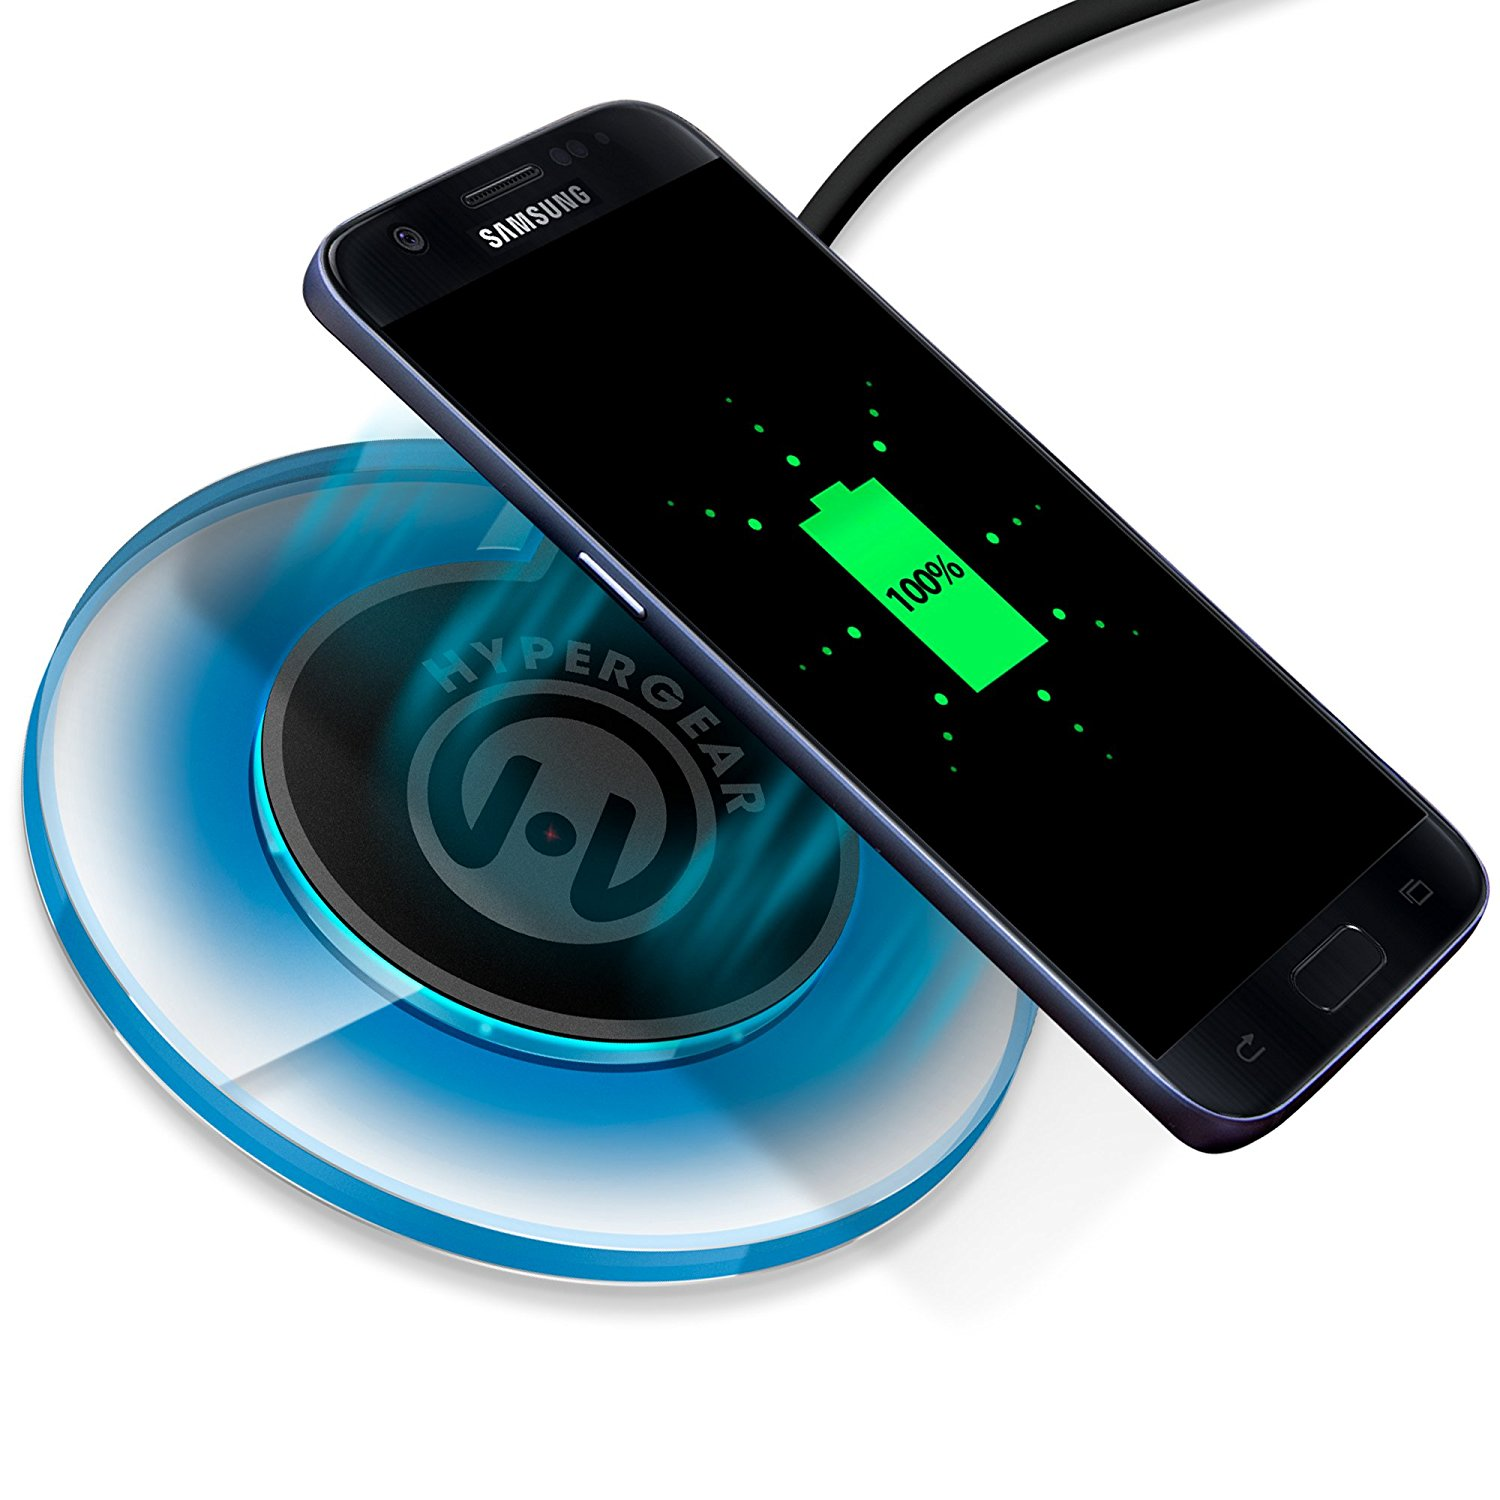 HyperGear UFO Wireless Charging Pad Image 2